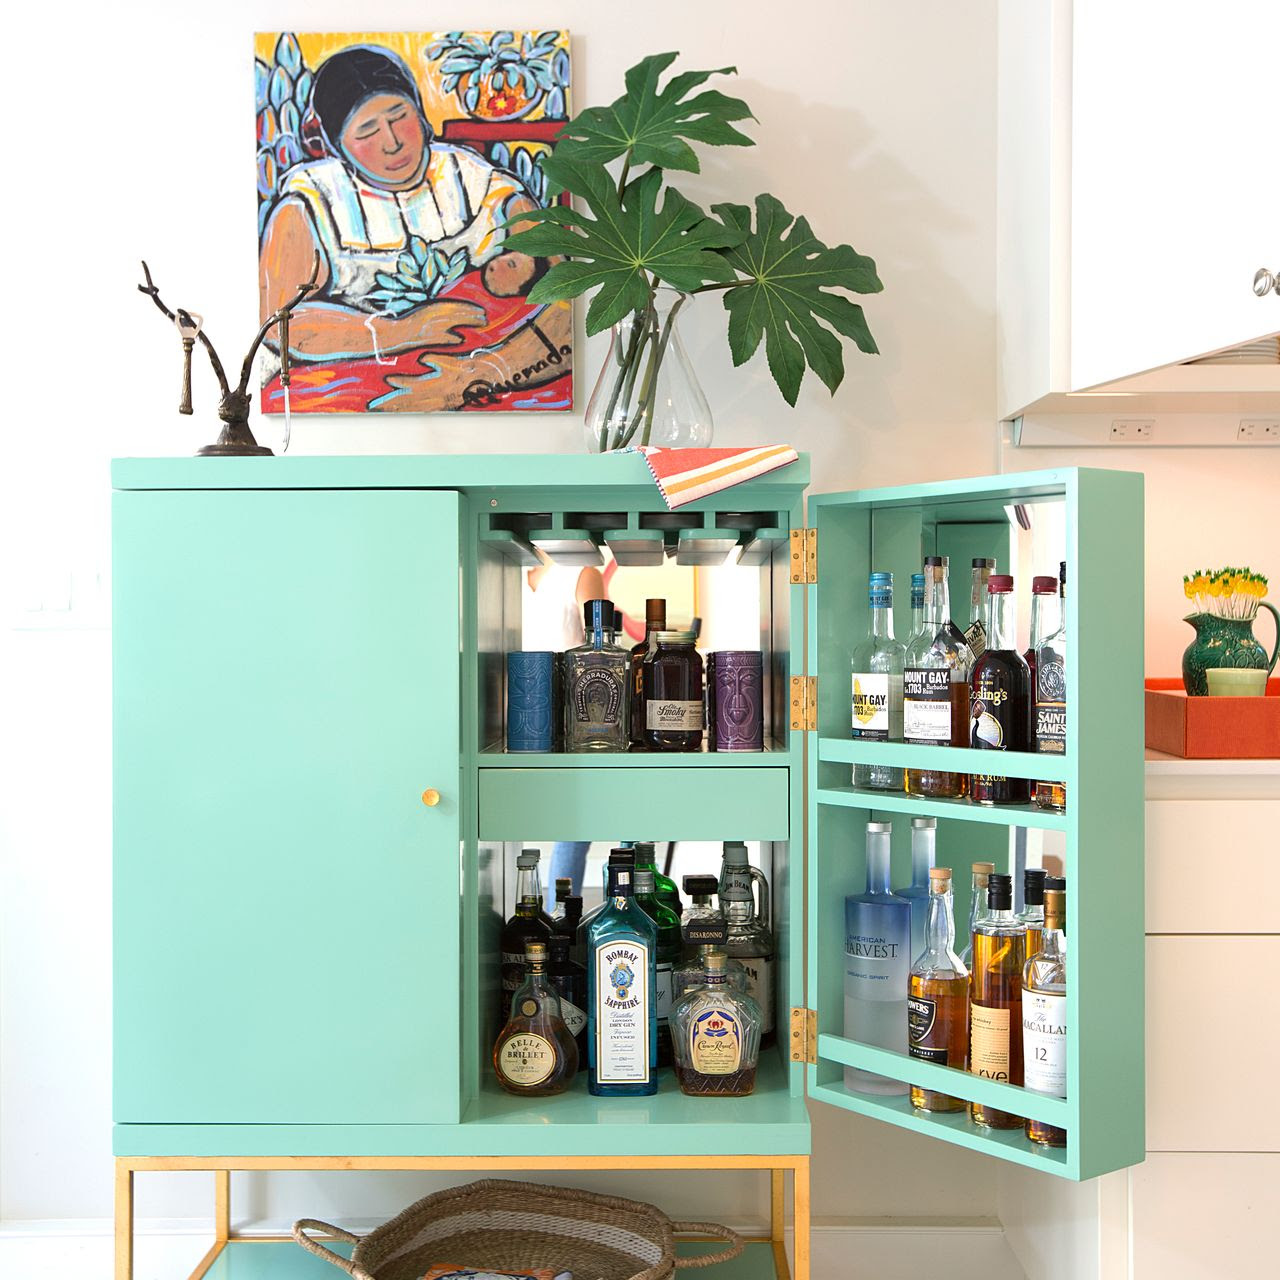 Hosting Cocktails? Impress Your Guests With These Bar Cabinets